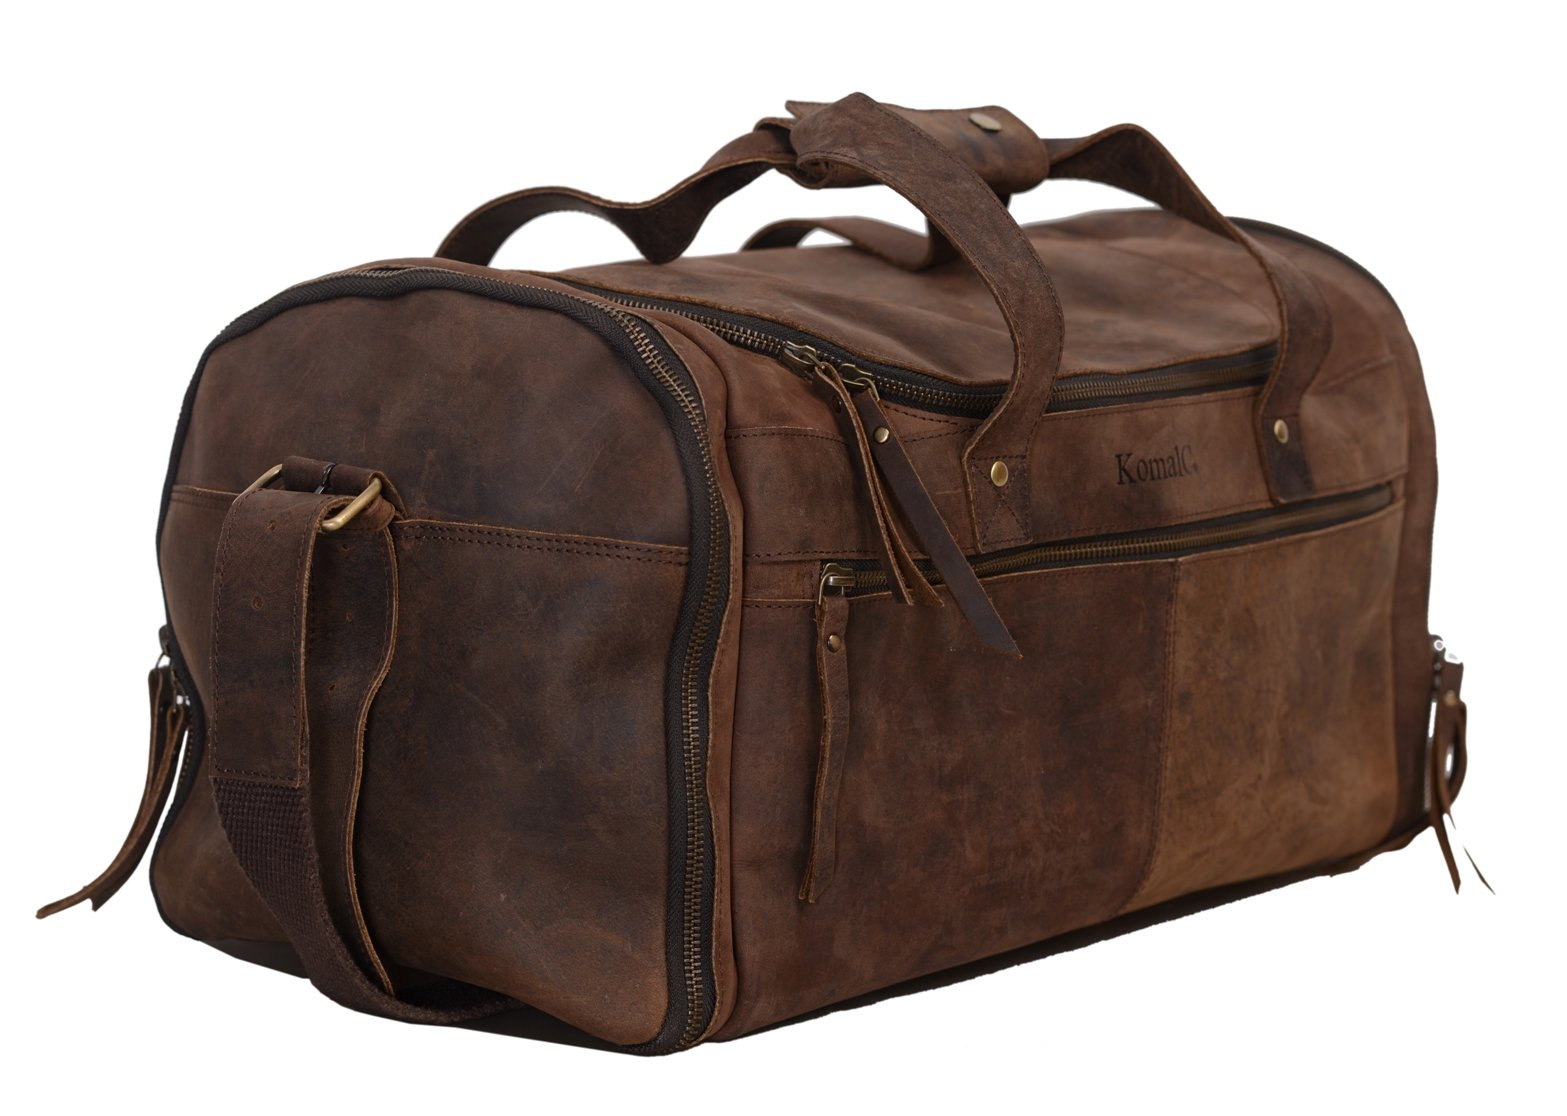 KomalC 21 inch U Zip Duffel holdall Travel Sports Overnight Weekend Leather Bag for Gym Sports Cabin by KomalC (Image #3)